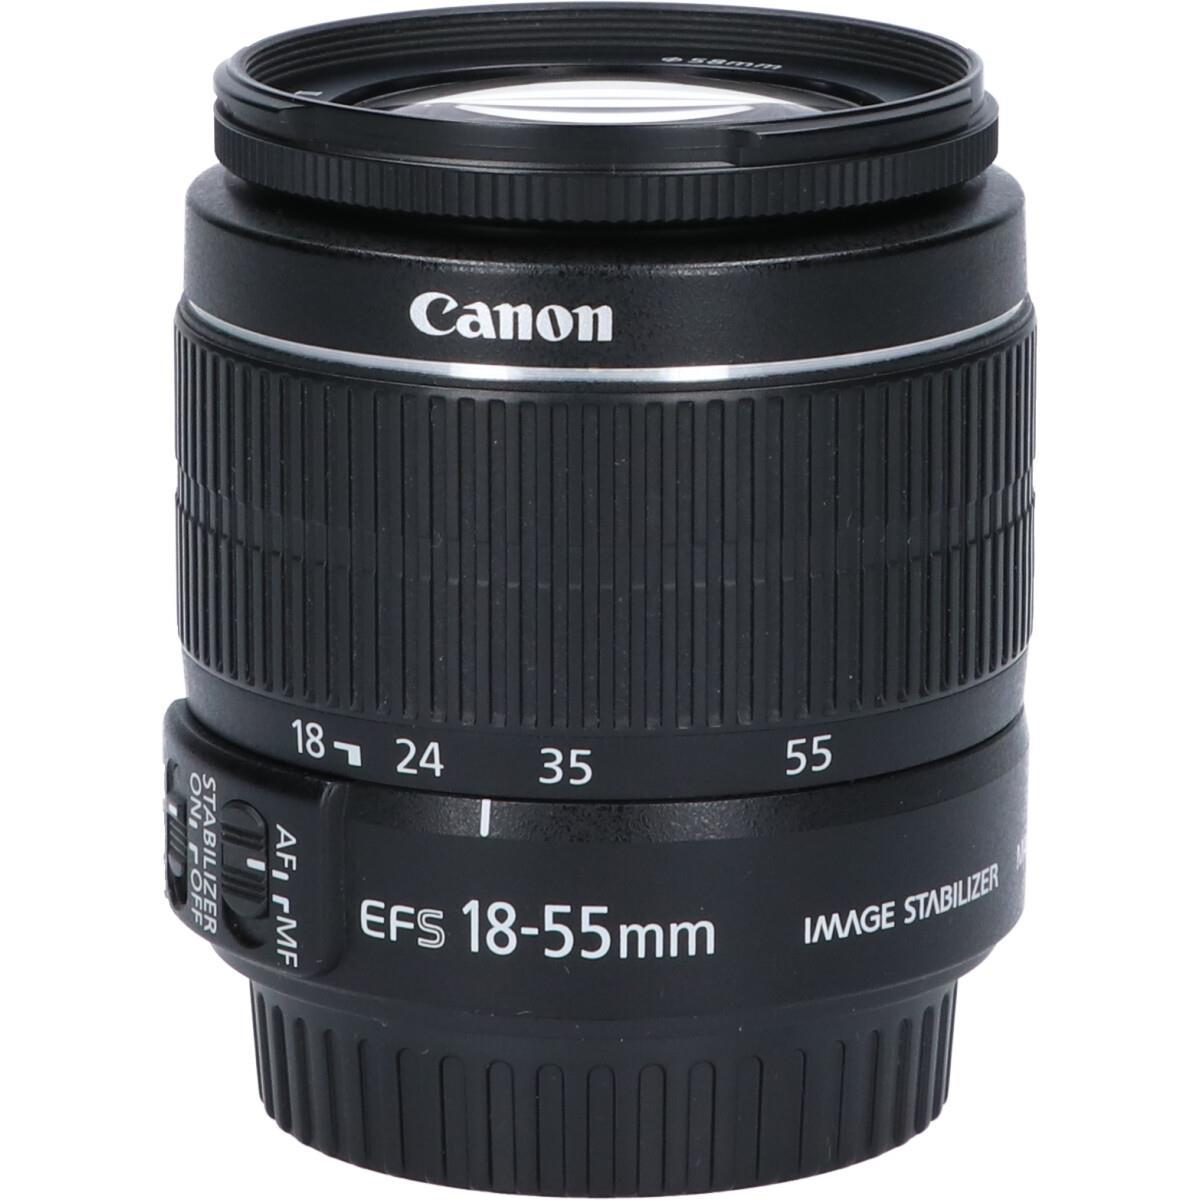 CANON EF-S18-55mm F3.5-5.6IS?